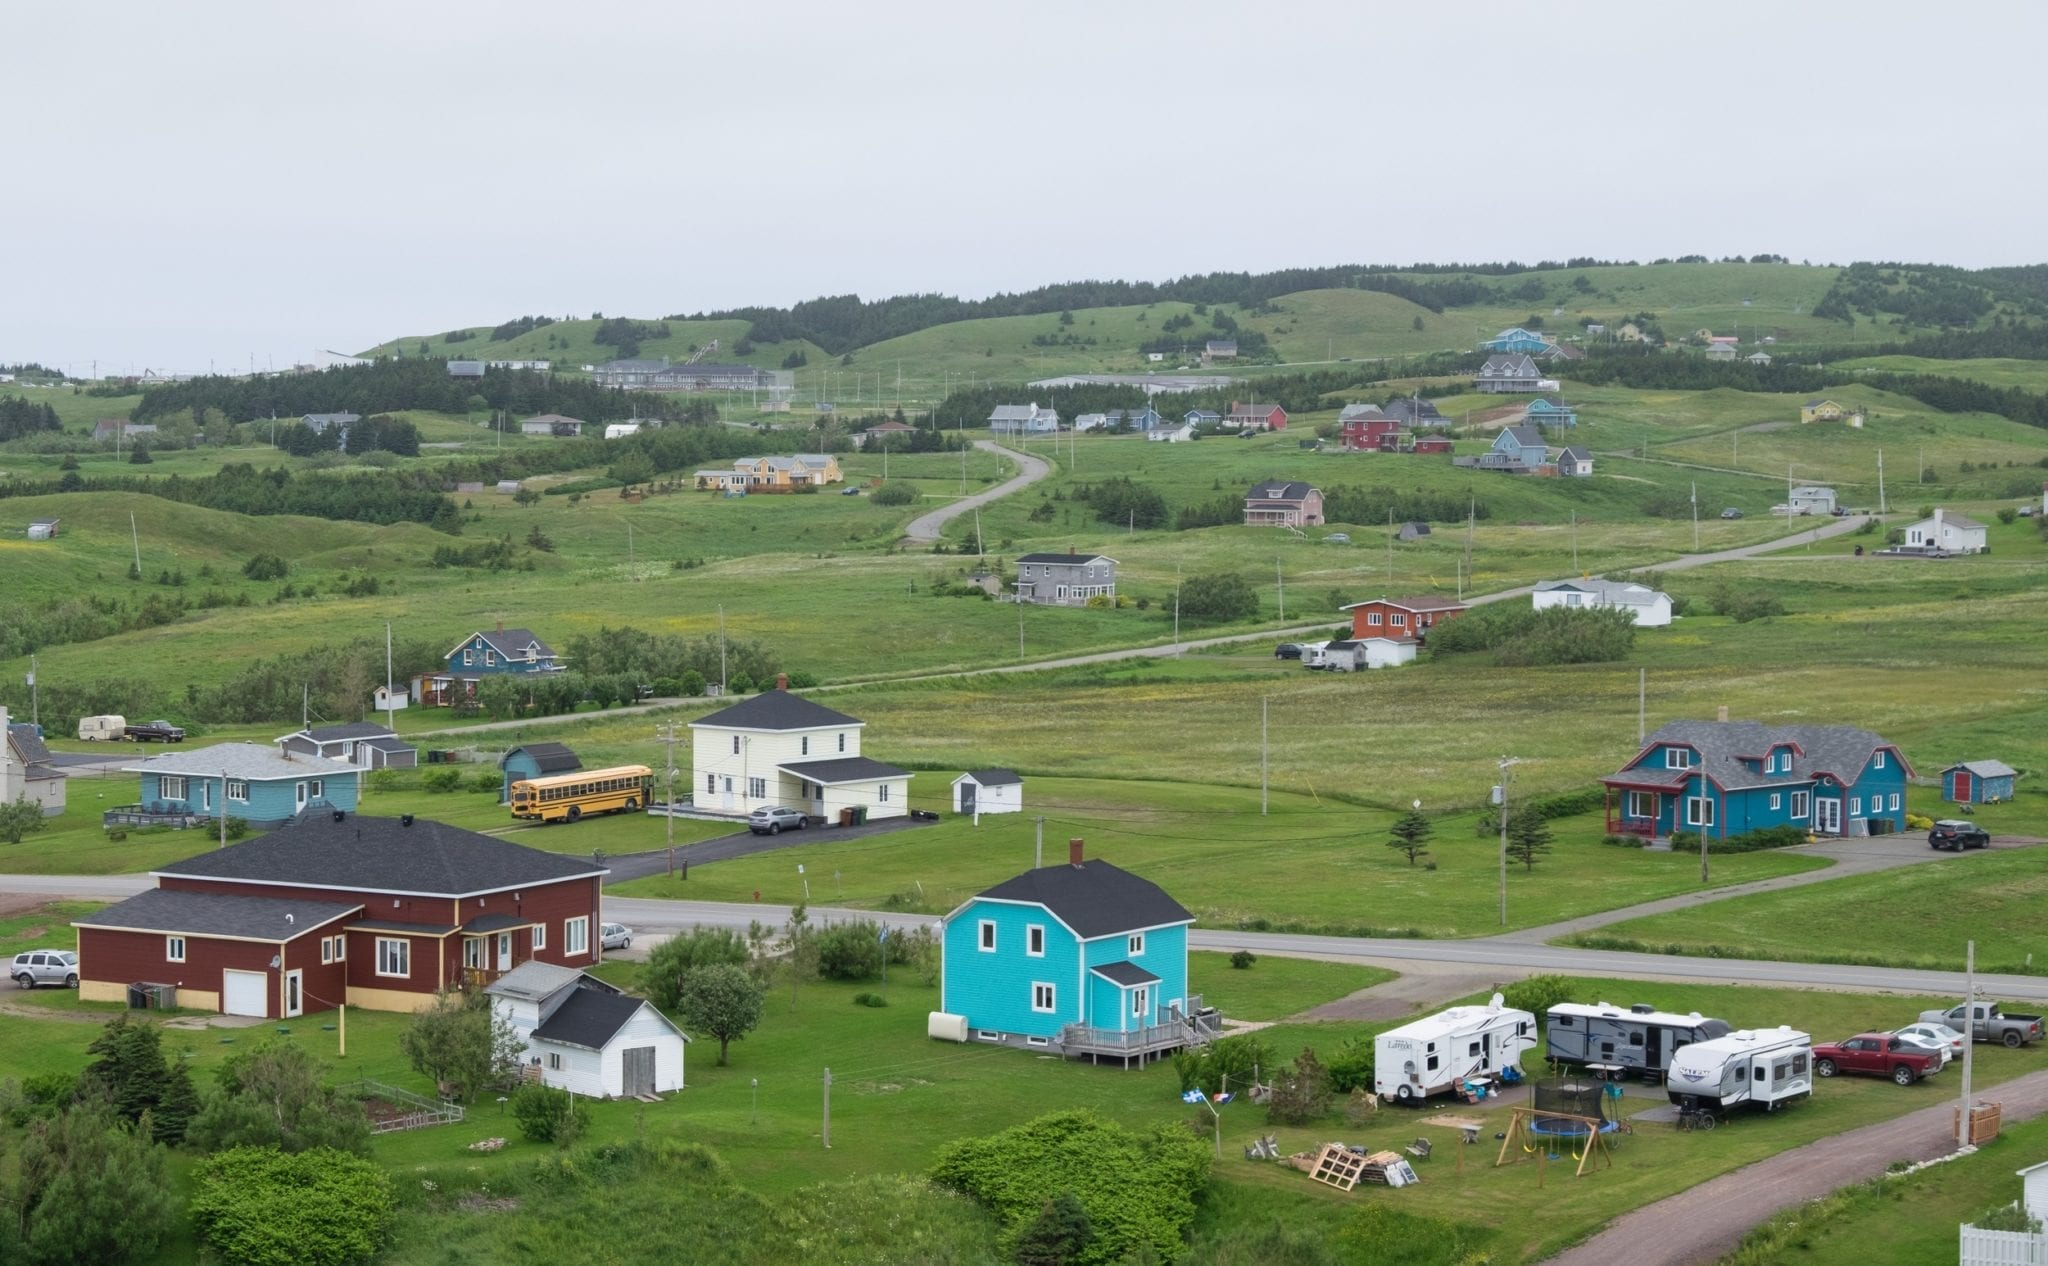 Tiny, brightly colored houses nestled into the hills of the Iles-de-la-Madeleine